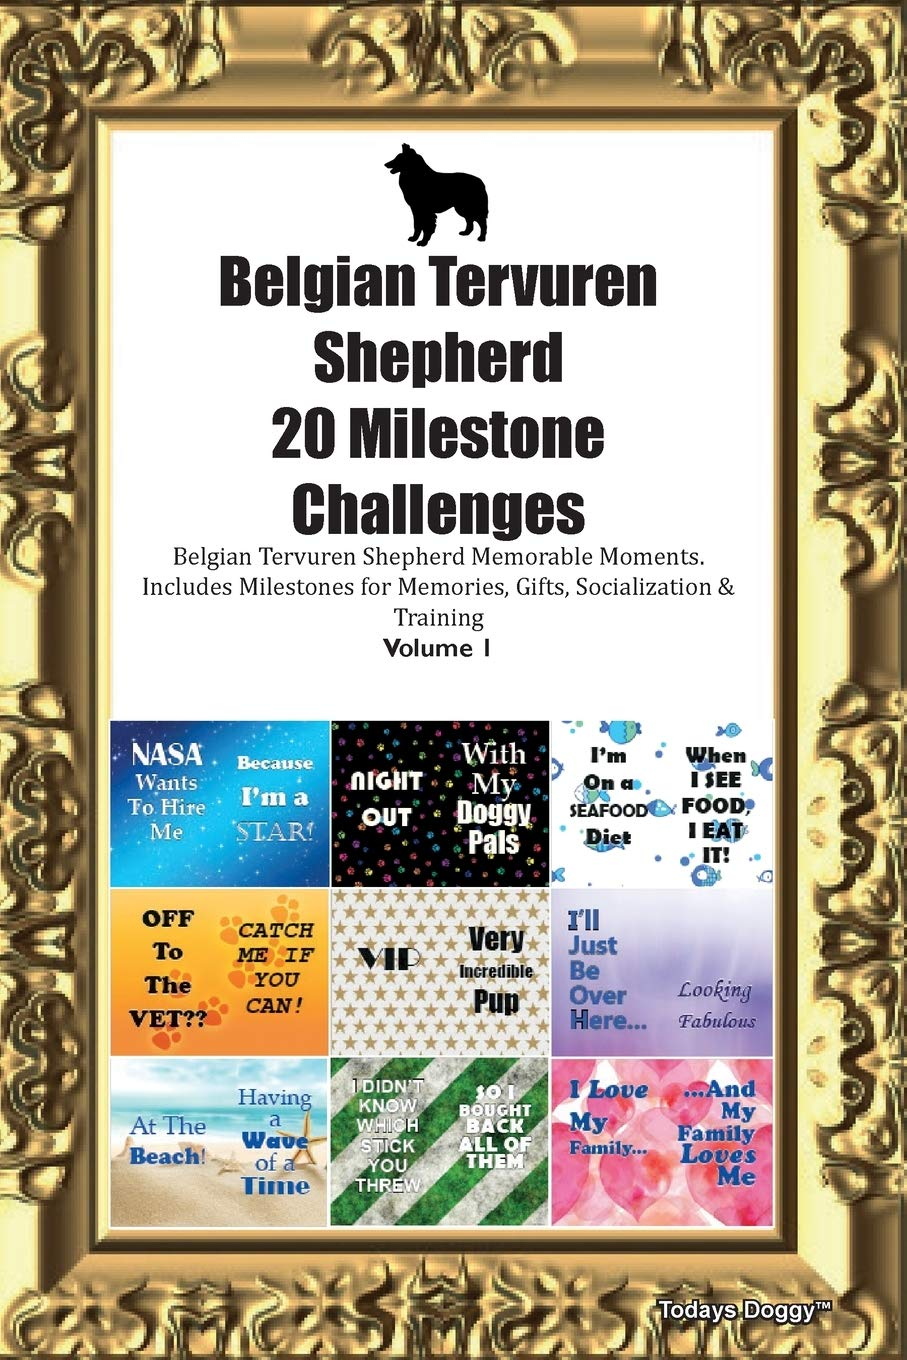 Belgian Tervuren Shepherd 20 Milestone Challenges Belgian Tervuren Shepherd Memorable Moments.Includes Milestones for…